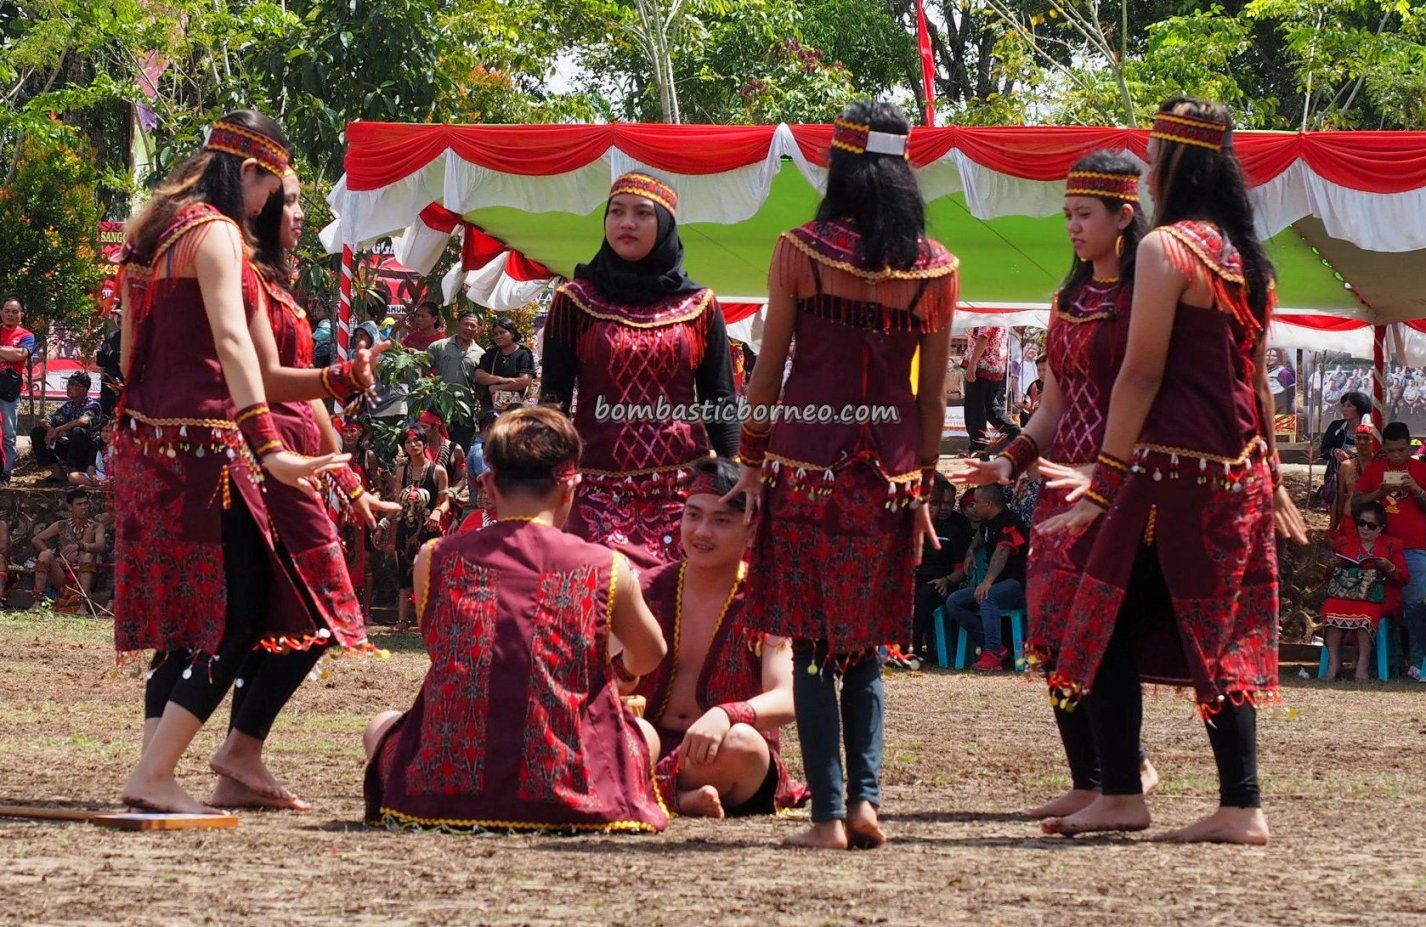 Gawai Dayak Sanggau, paddy harvest festival, authentic, traditional, backpackers, culture, Borneo, Indonesia, West Kalimantan, ethnic, native, Obyek wisata, Tourism, travel guide, trans border,